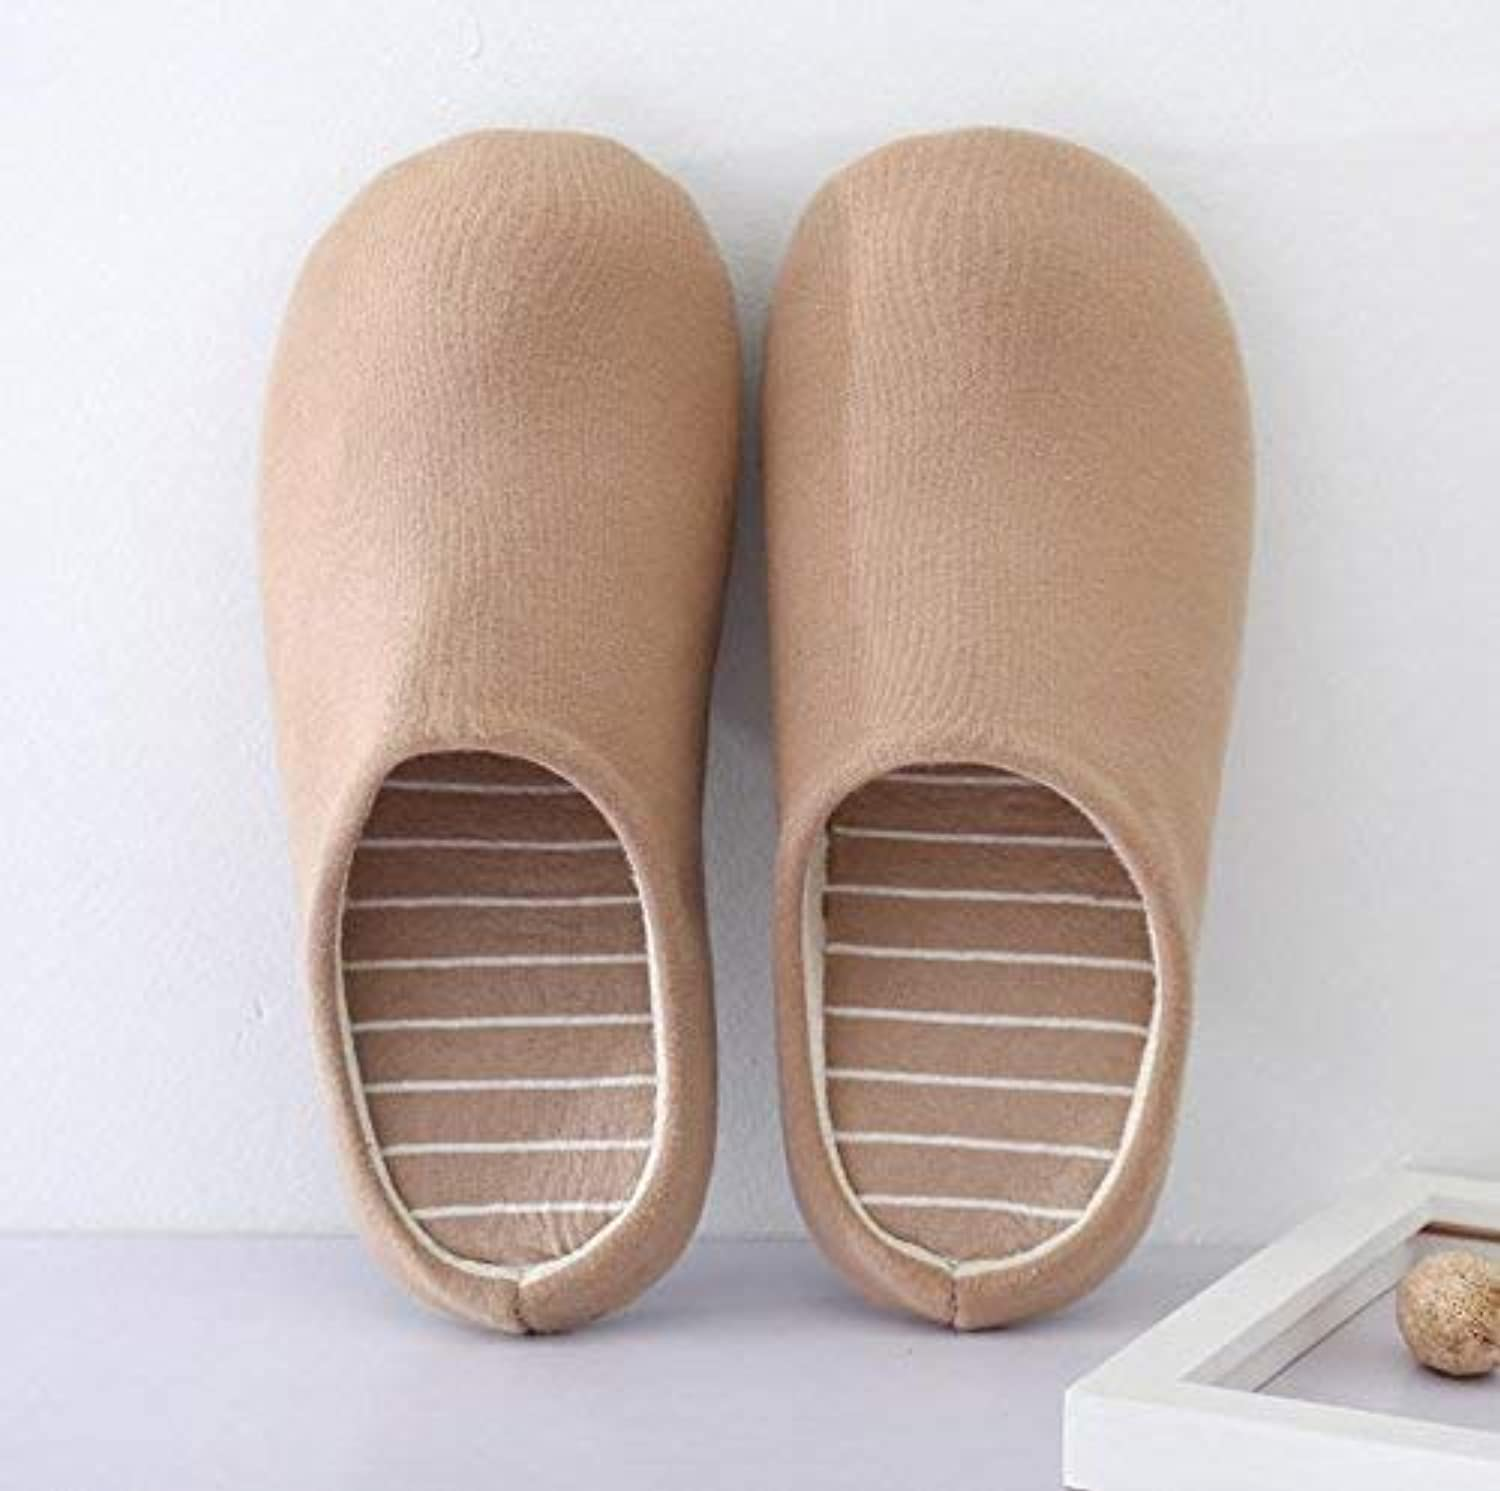 Men 's Home Slippers Indoor Non Slip Keep Warm Casual Cotton Slippers Small for Men Soild color Khaki